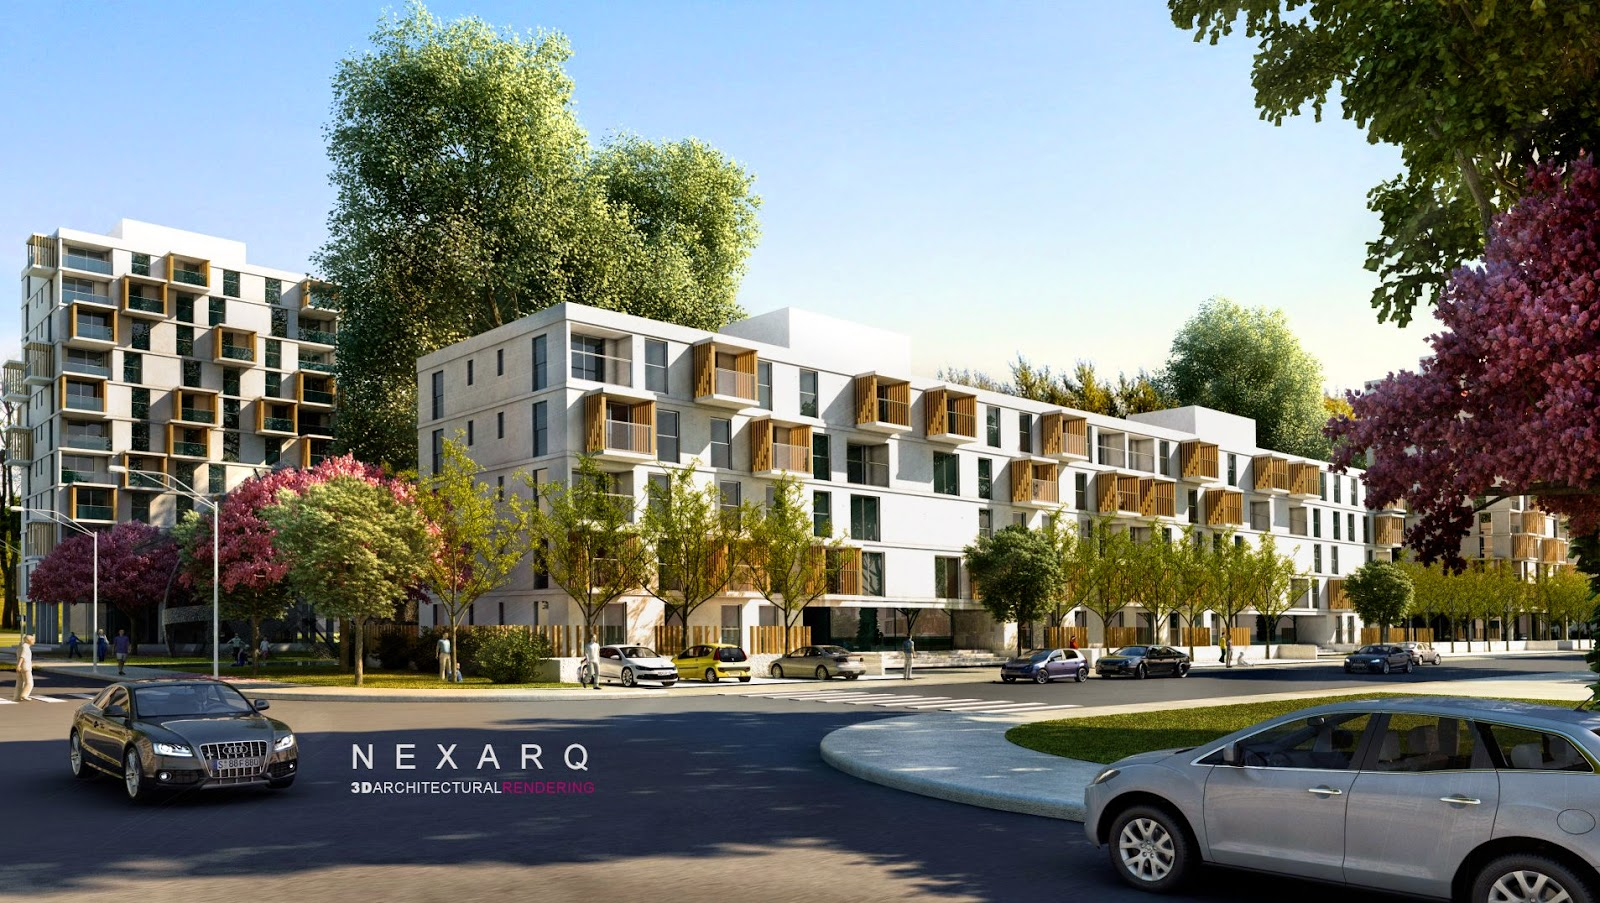 Renders arquitectura 3d animaci n y video nexarq 3d for Programas para arquitectura 3d